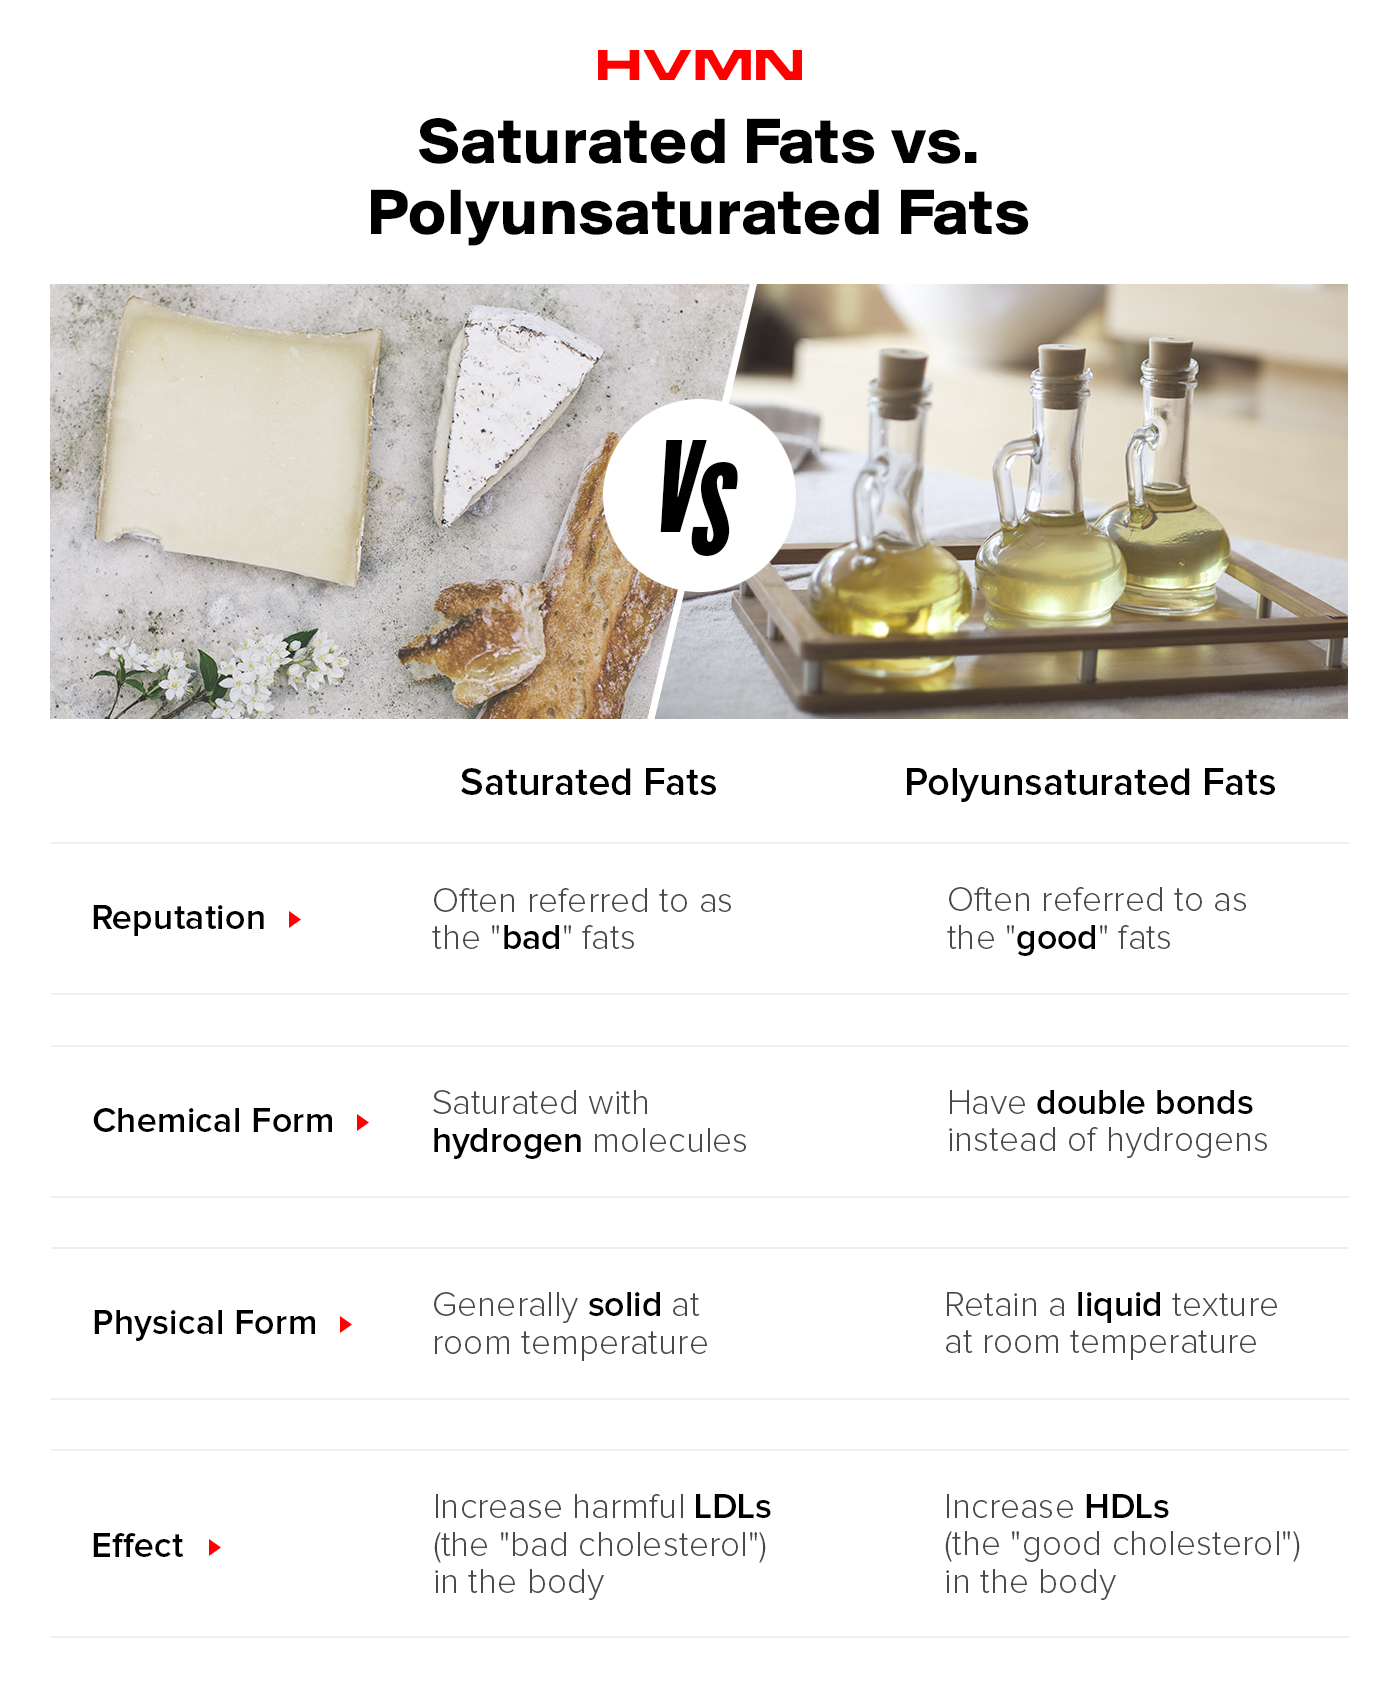 An image of cheese shown against an image of olive oil, showing the difference between saturated and polyunsaturated fats